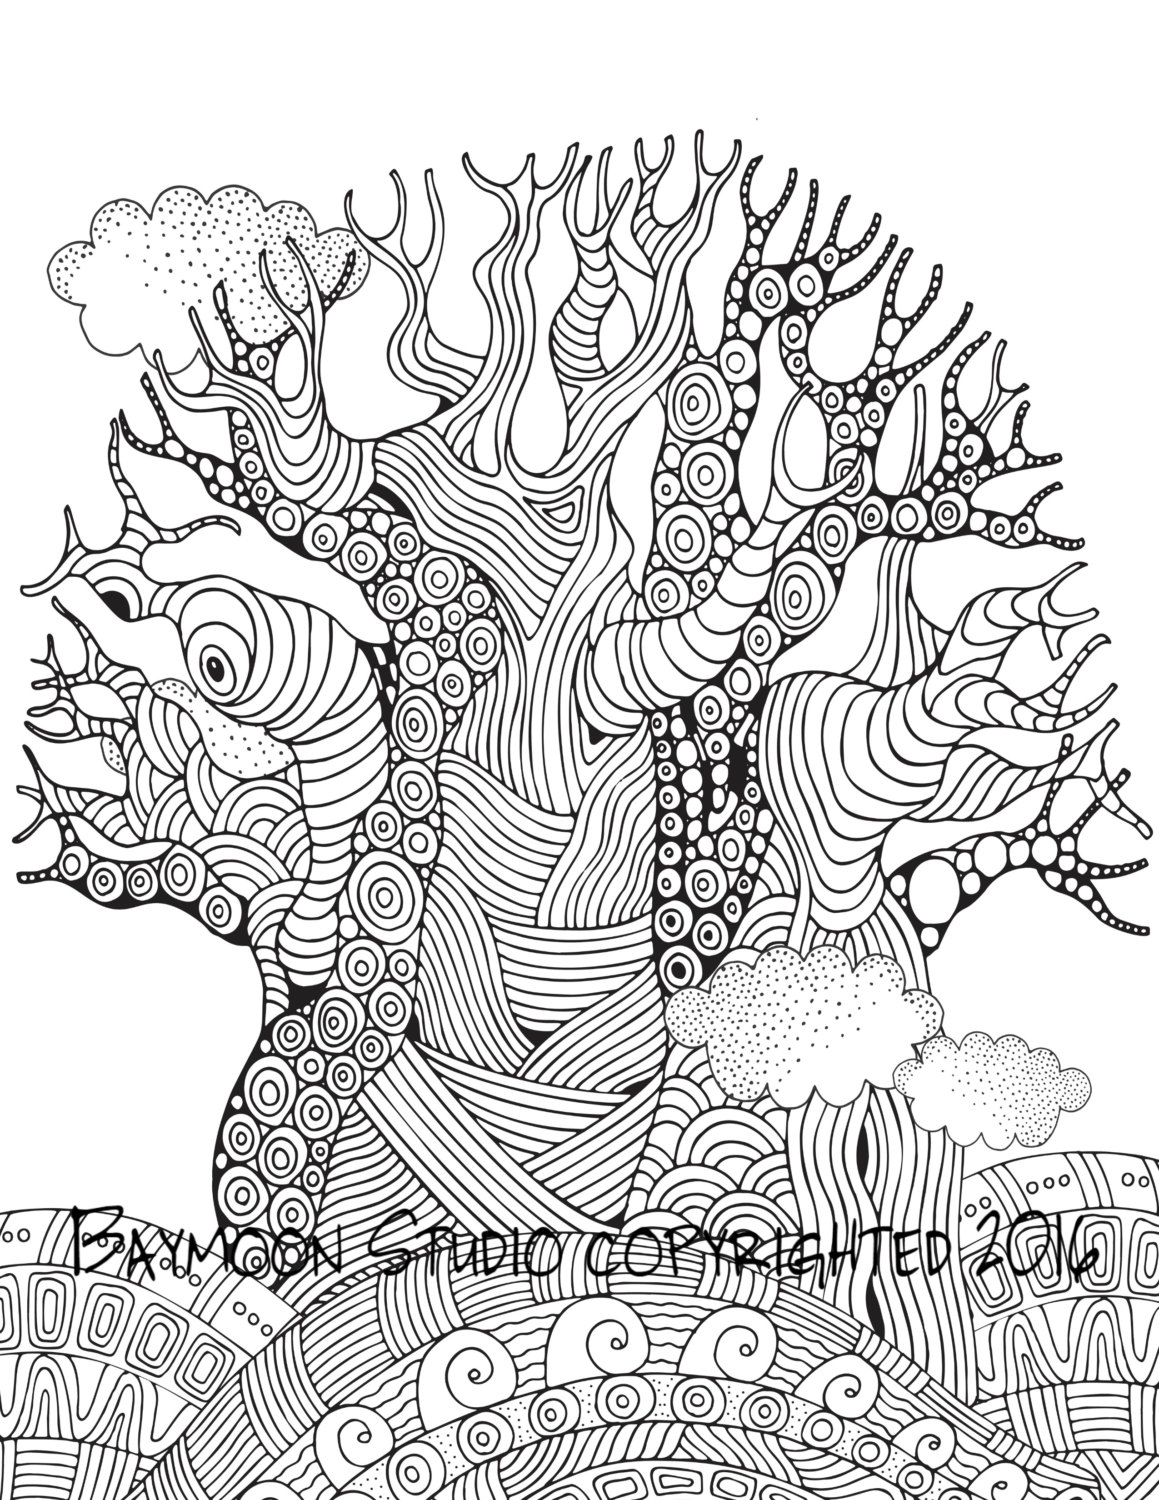 1159x1500 African Baobab Tree Coloring Page Printable By Baymoonstudio